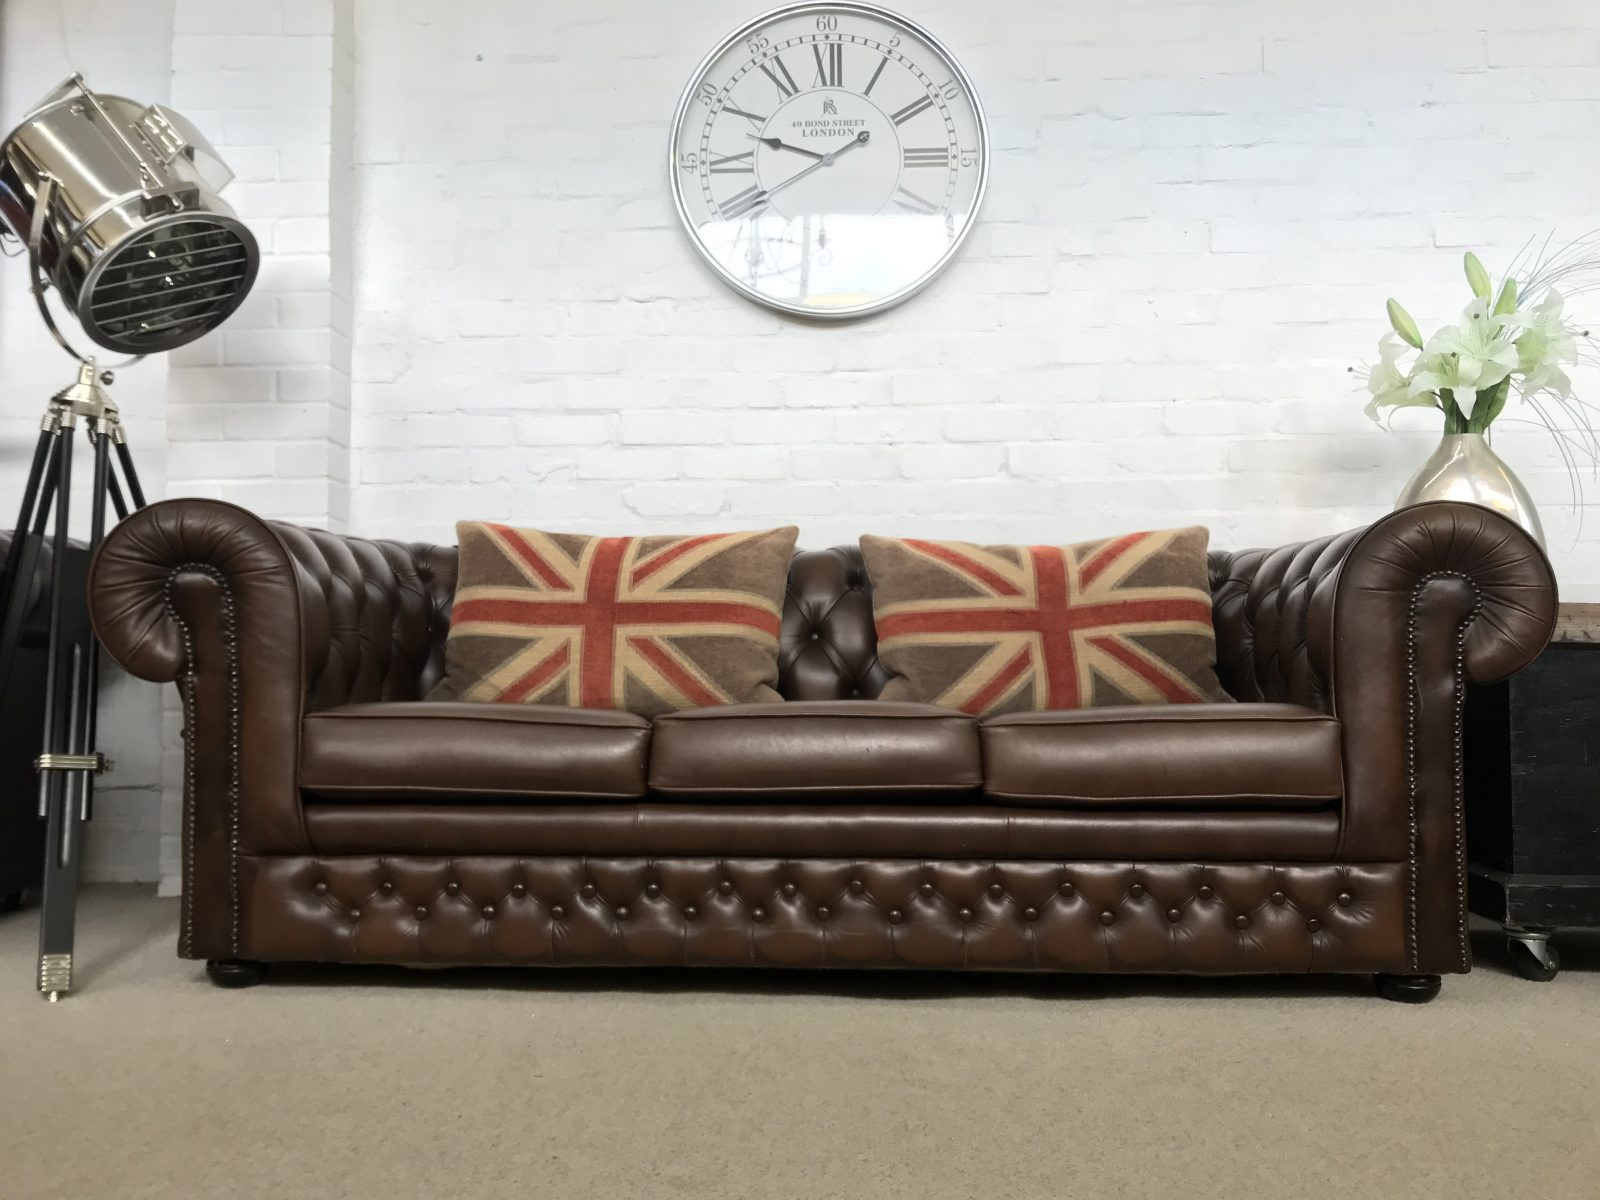 Thomas Lloyd Chesterfield Sofa Bed.